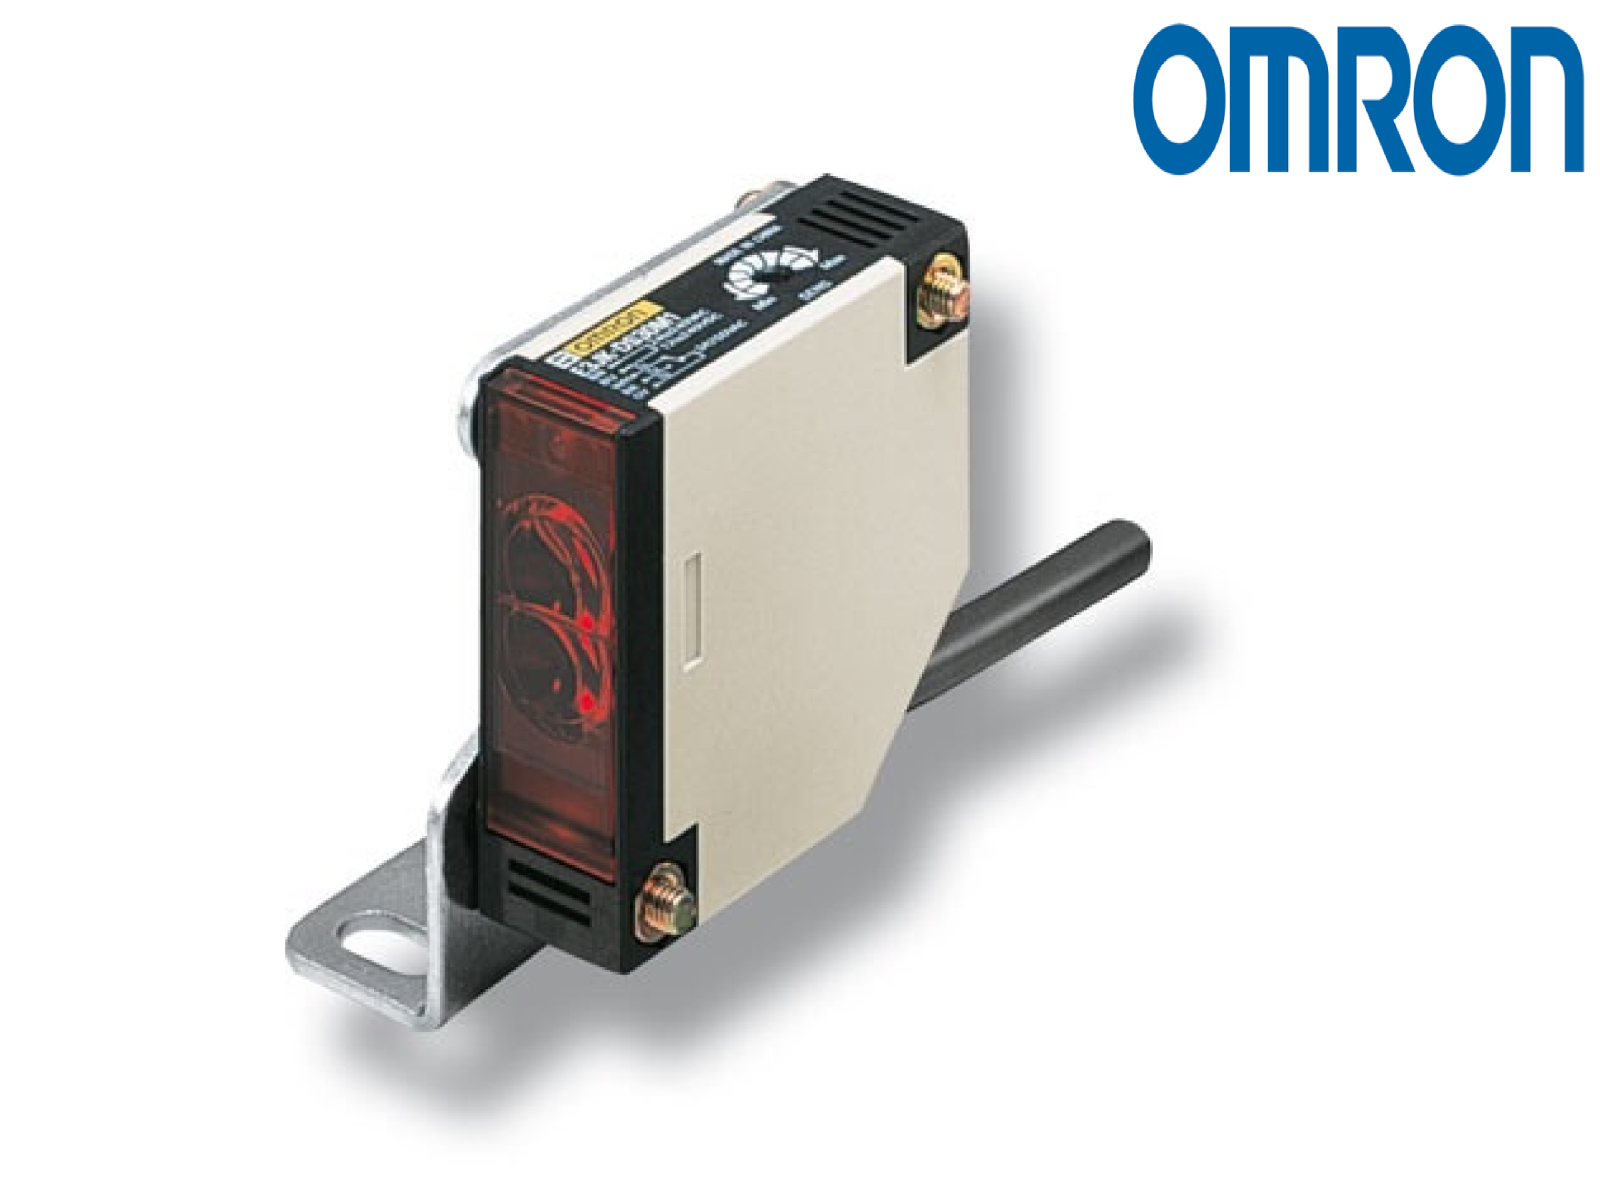 Omron E3S-C series model